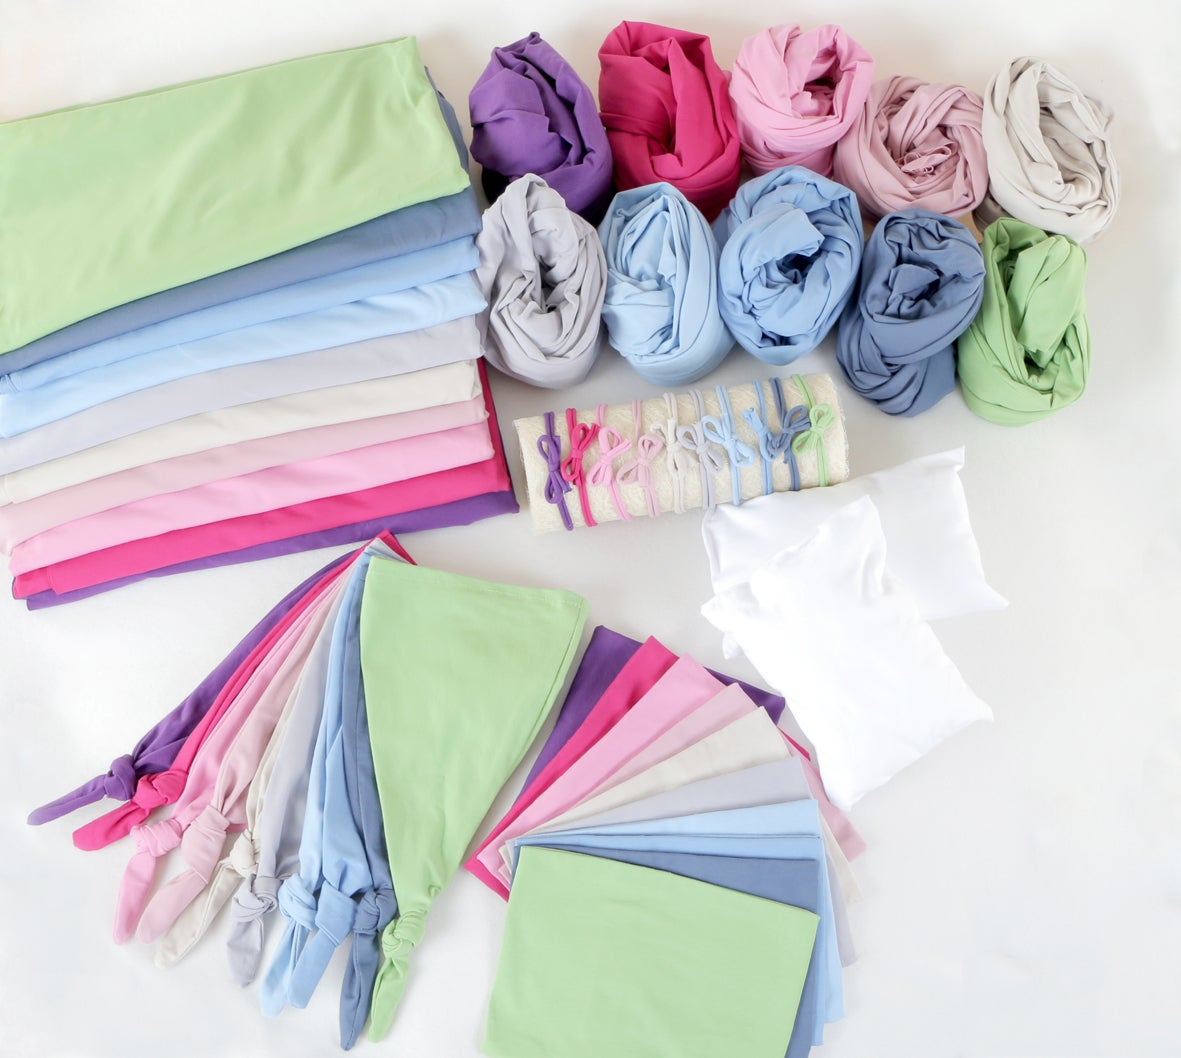 10 Stretchy Jersey Cotton Sets (5 pieces)